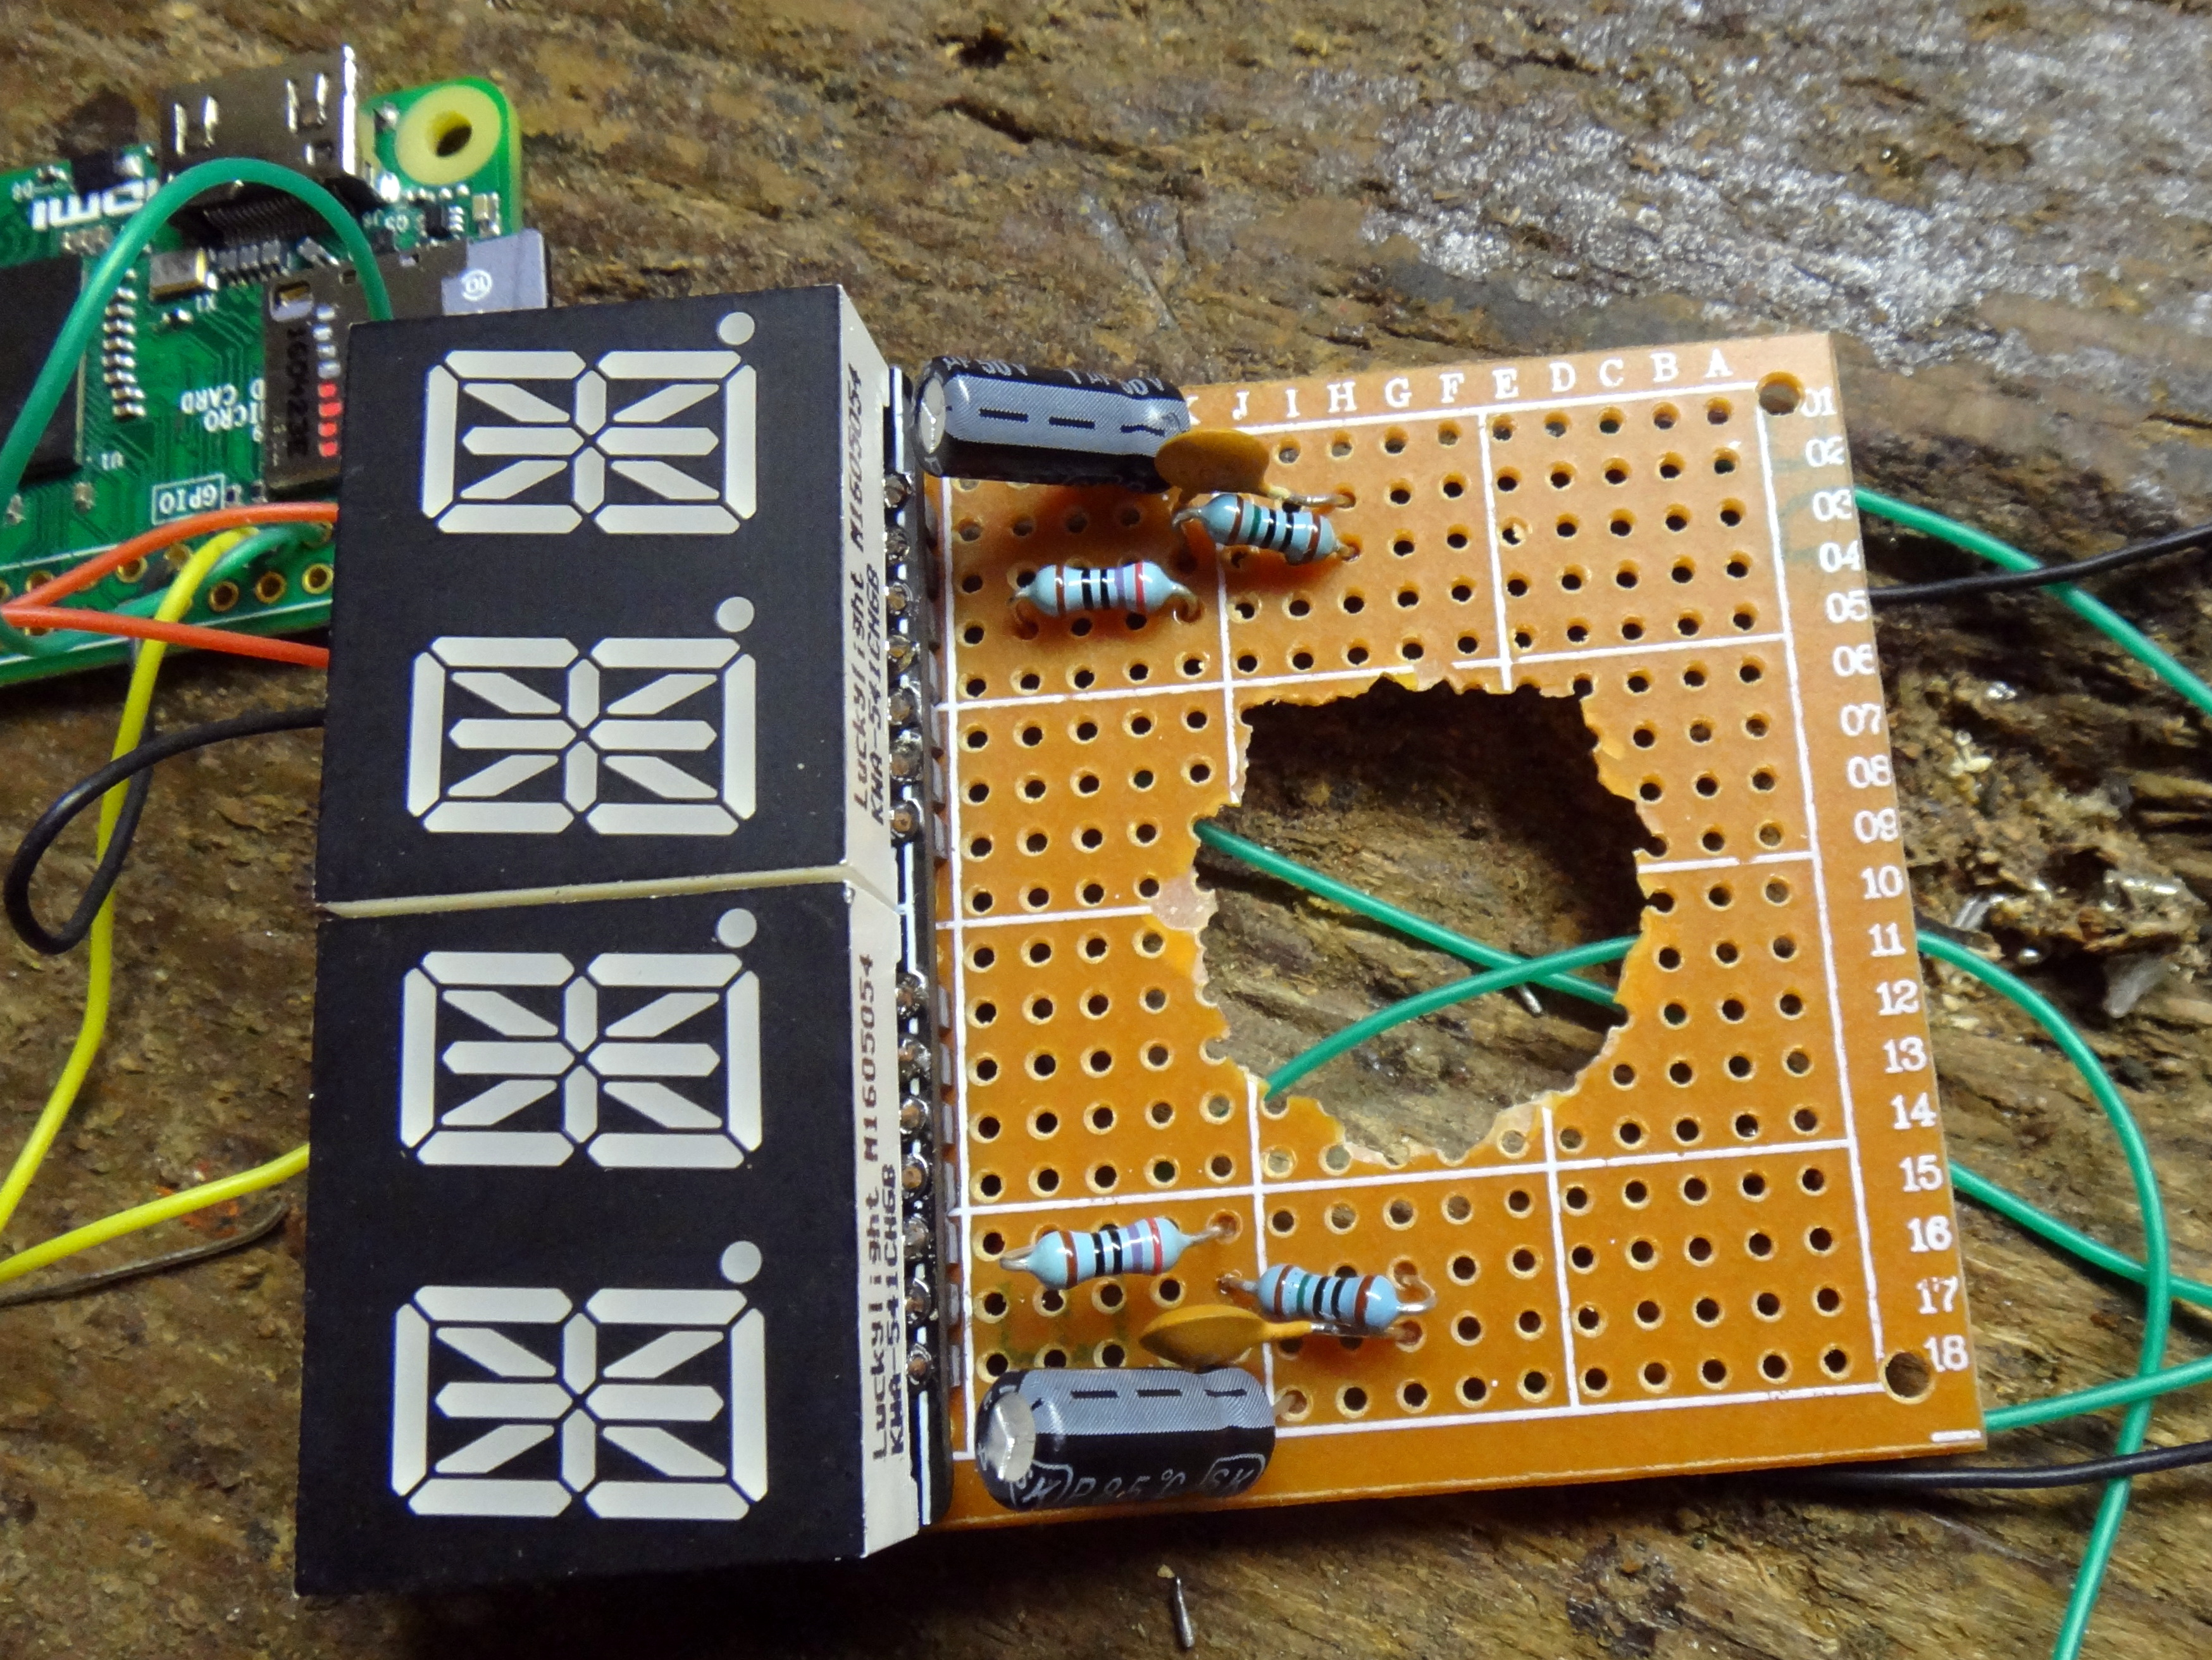 4 Enable Audio Via Pwm Fgebhart Smart Alarm Wiki Github Circuit Connected We Can Go Ahead And Add Some Code For Our Raspberry Once You Are Done Your Should Look Something Like The Next Picture Green Wires At Bottom One Coming From